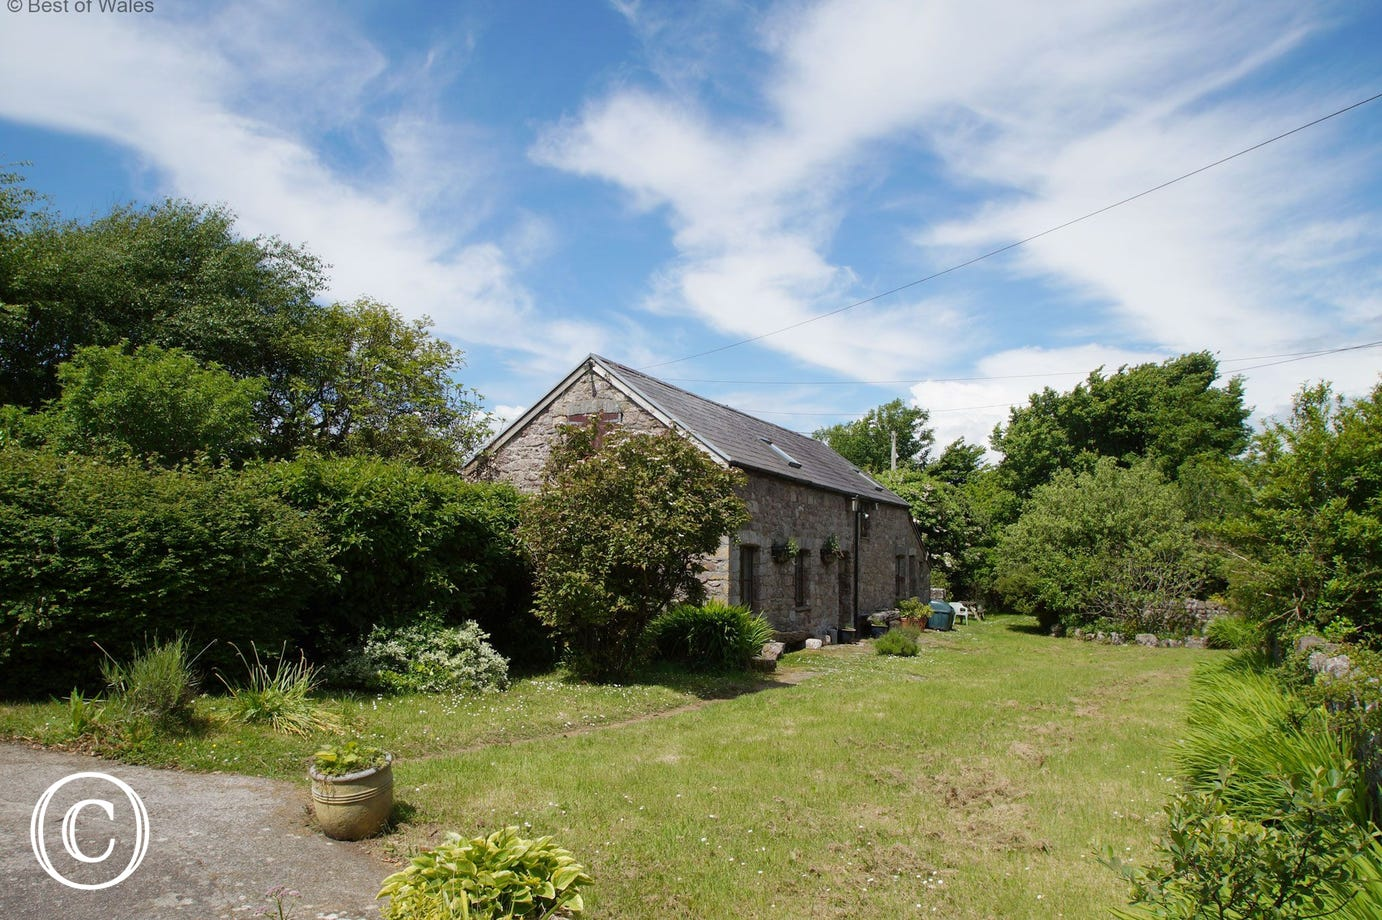 Llangenith Holiday Cottage